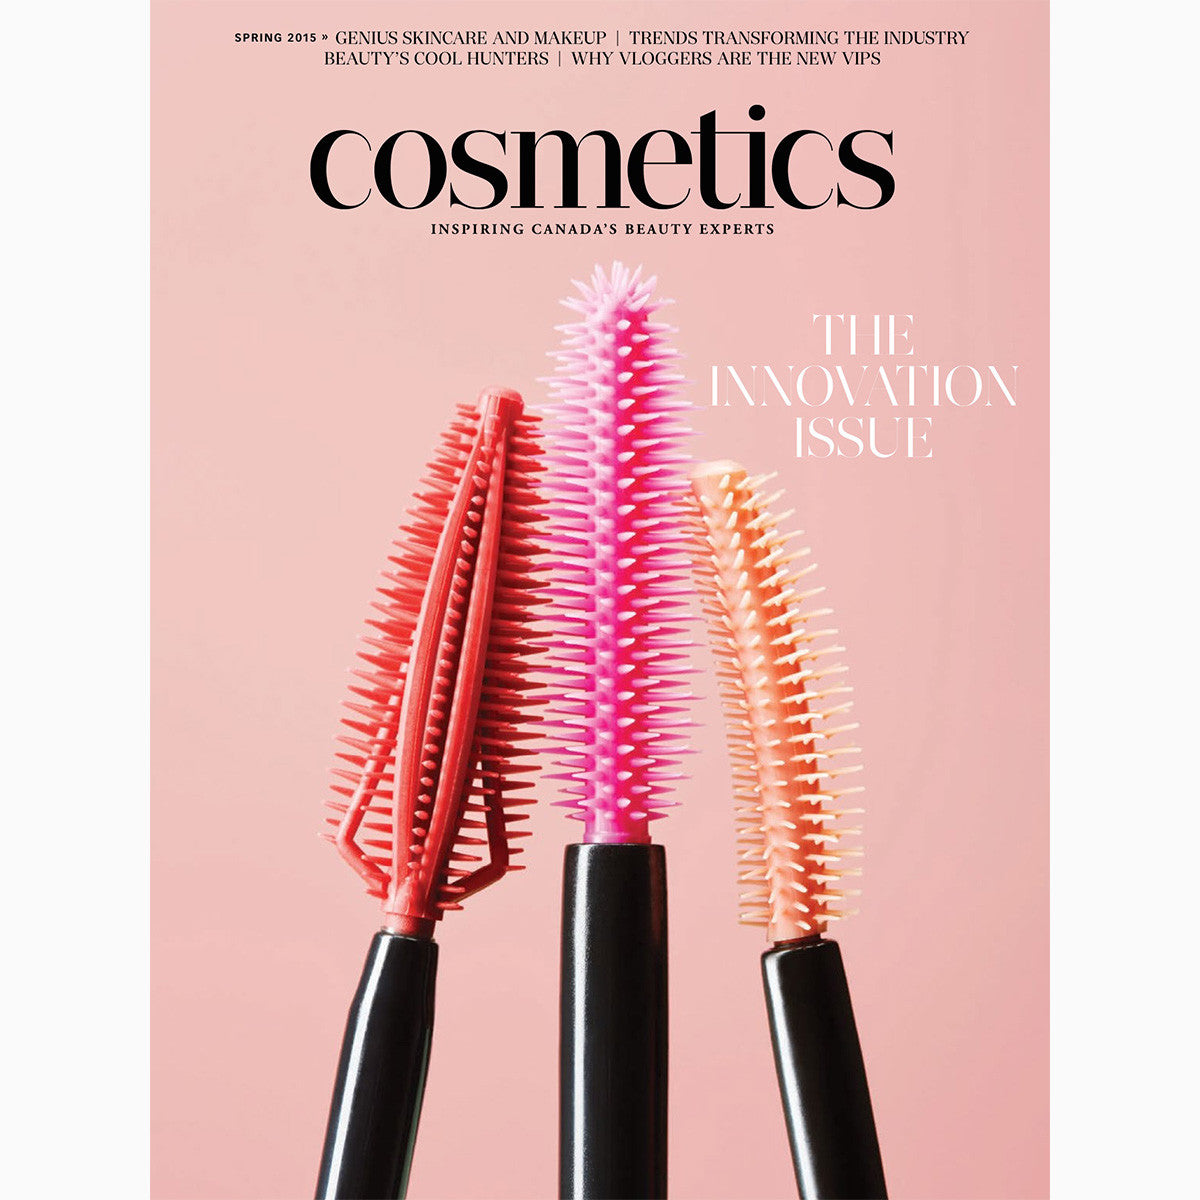 Print Press: Cosmetics Magazine (Spring 2015, The Innovation Issue)